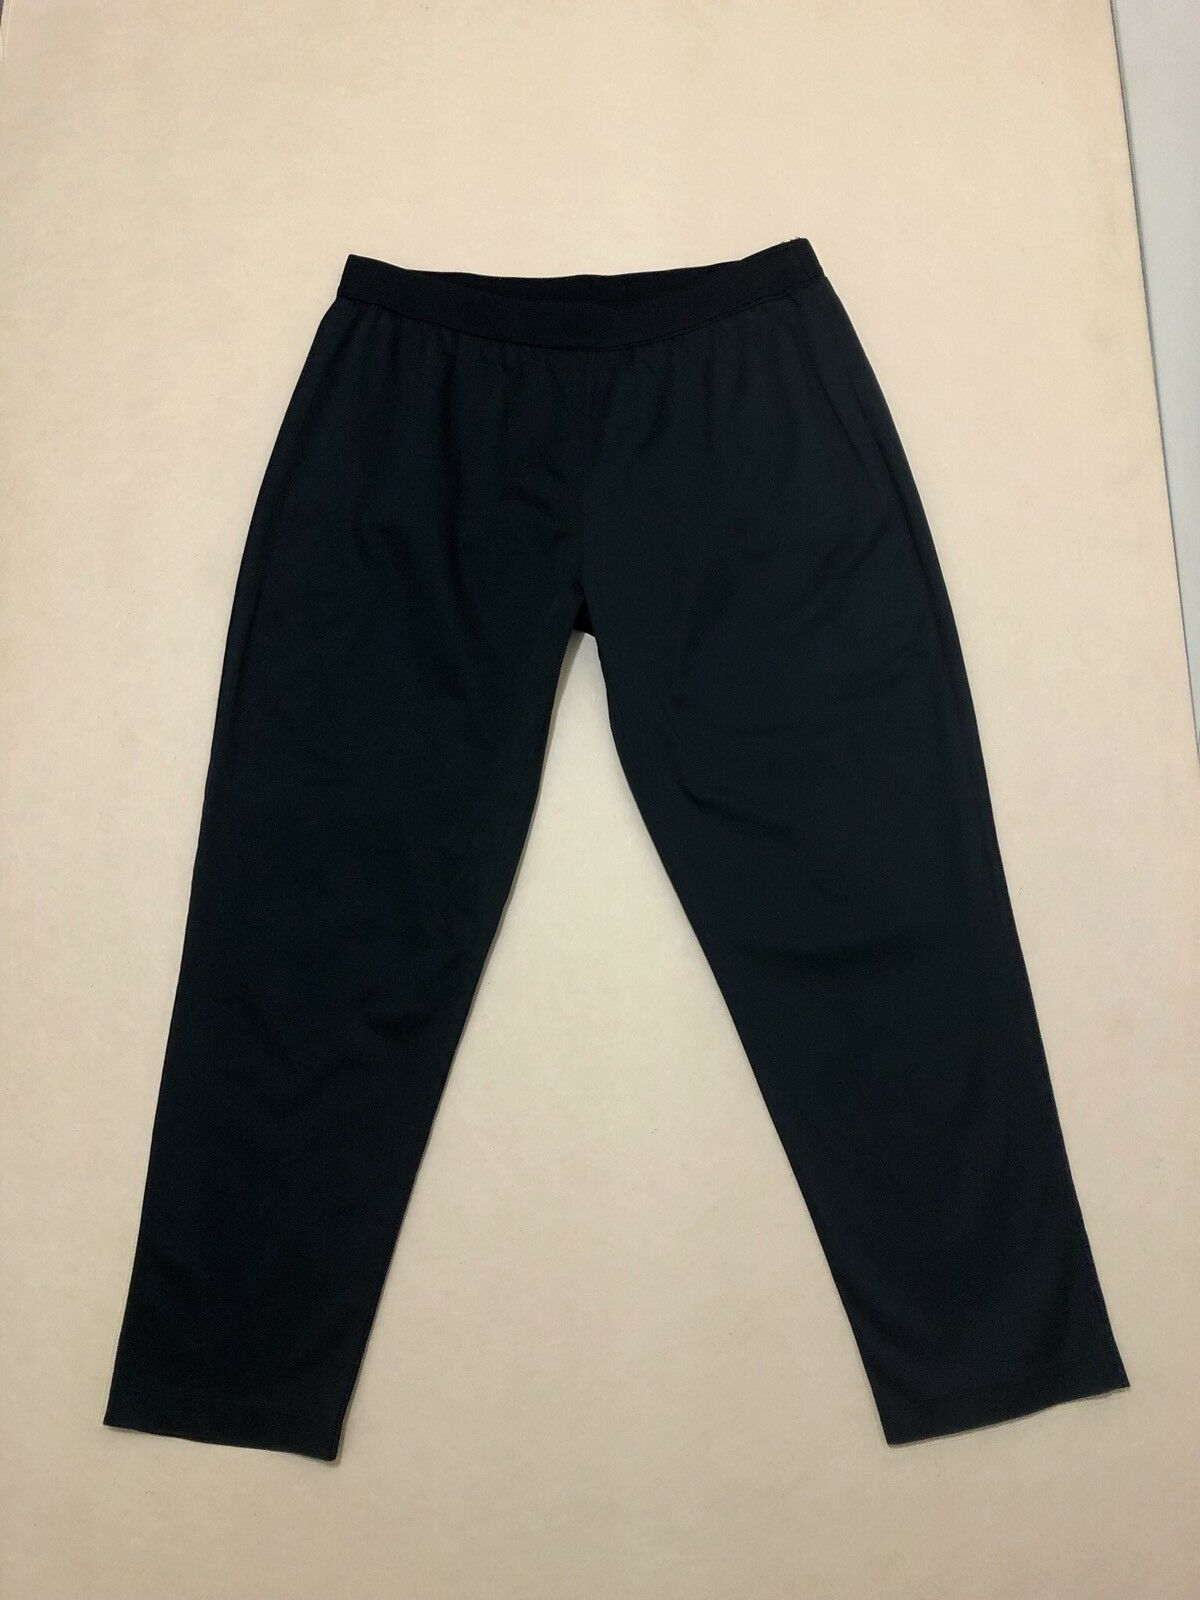 COOPER BY TRELISE COOPER PANTS WOMENS  12  GREAT COND BUSINESS TROUSERS CASUAL